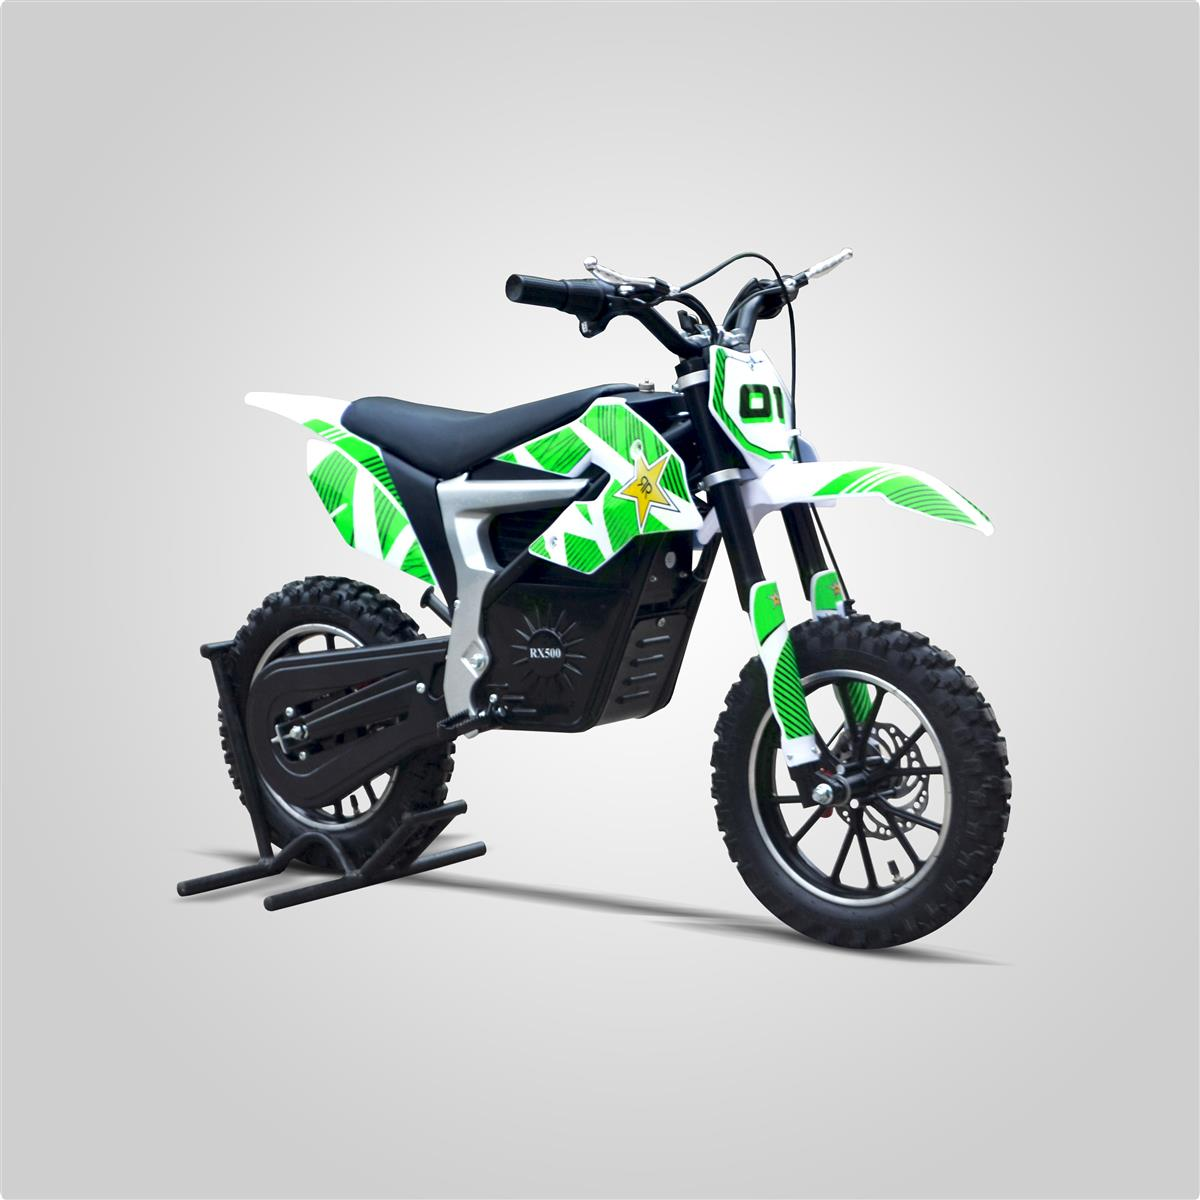 pocketcross-pocket-bike-rx-500w-vert-smallmx